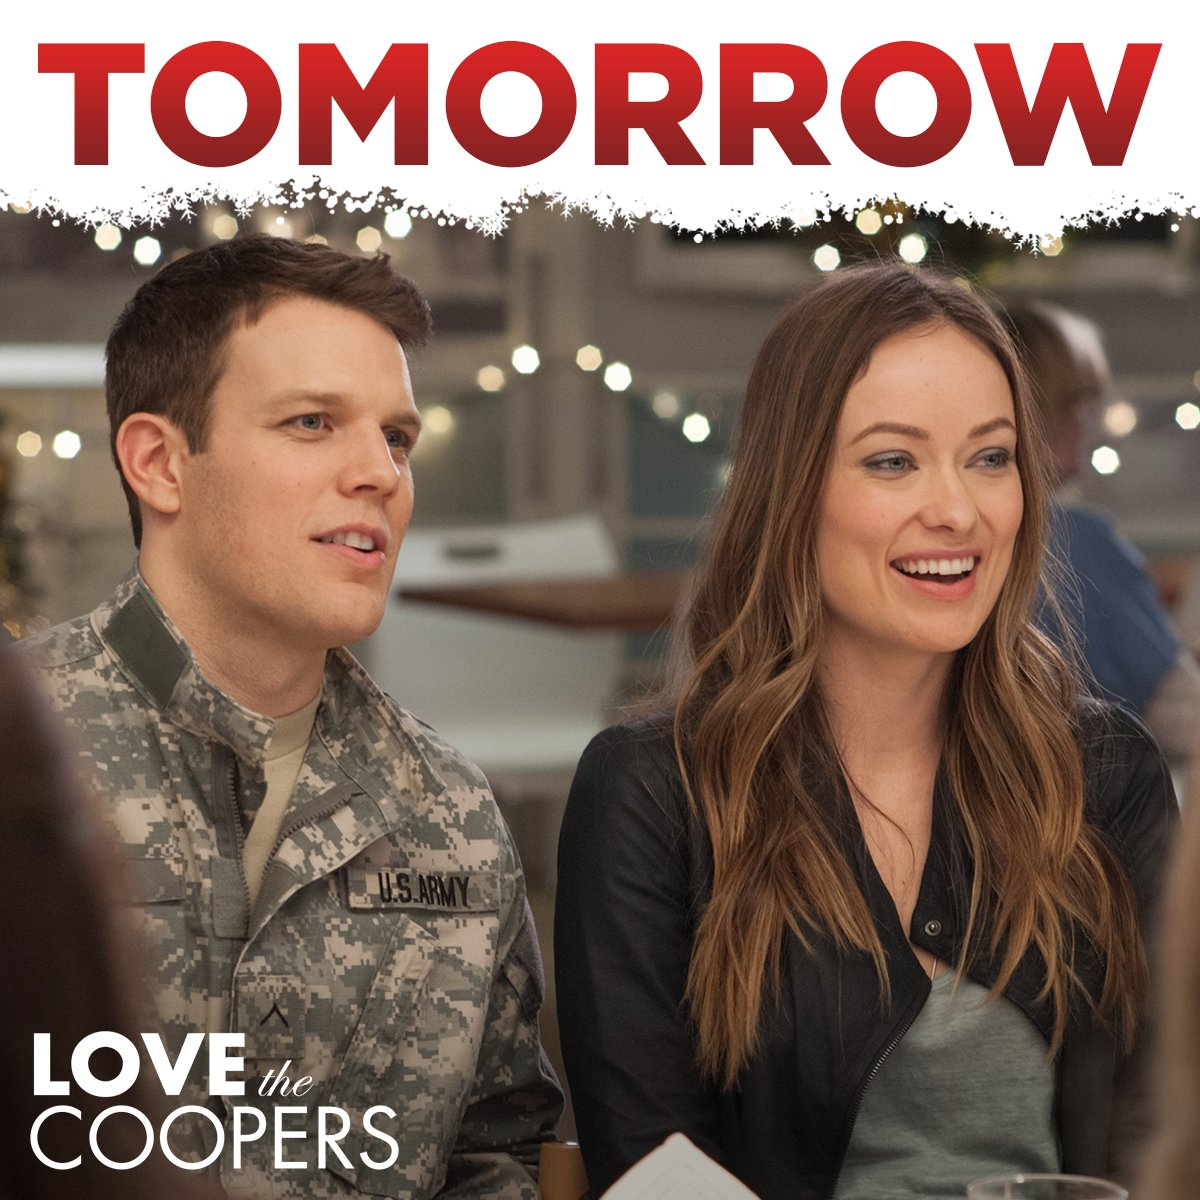 This weekend, curl up with someone you love and watch Love the Coopers -  coming to  Blu-ray & DVD tomorrow! https://t.co/9gn3tiRQHL